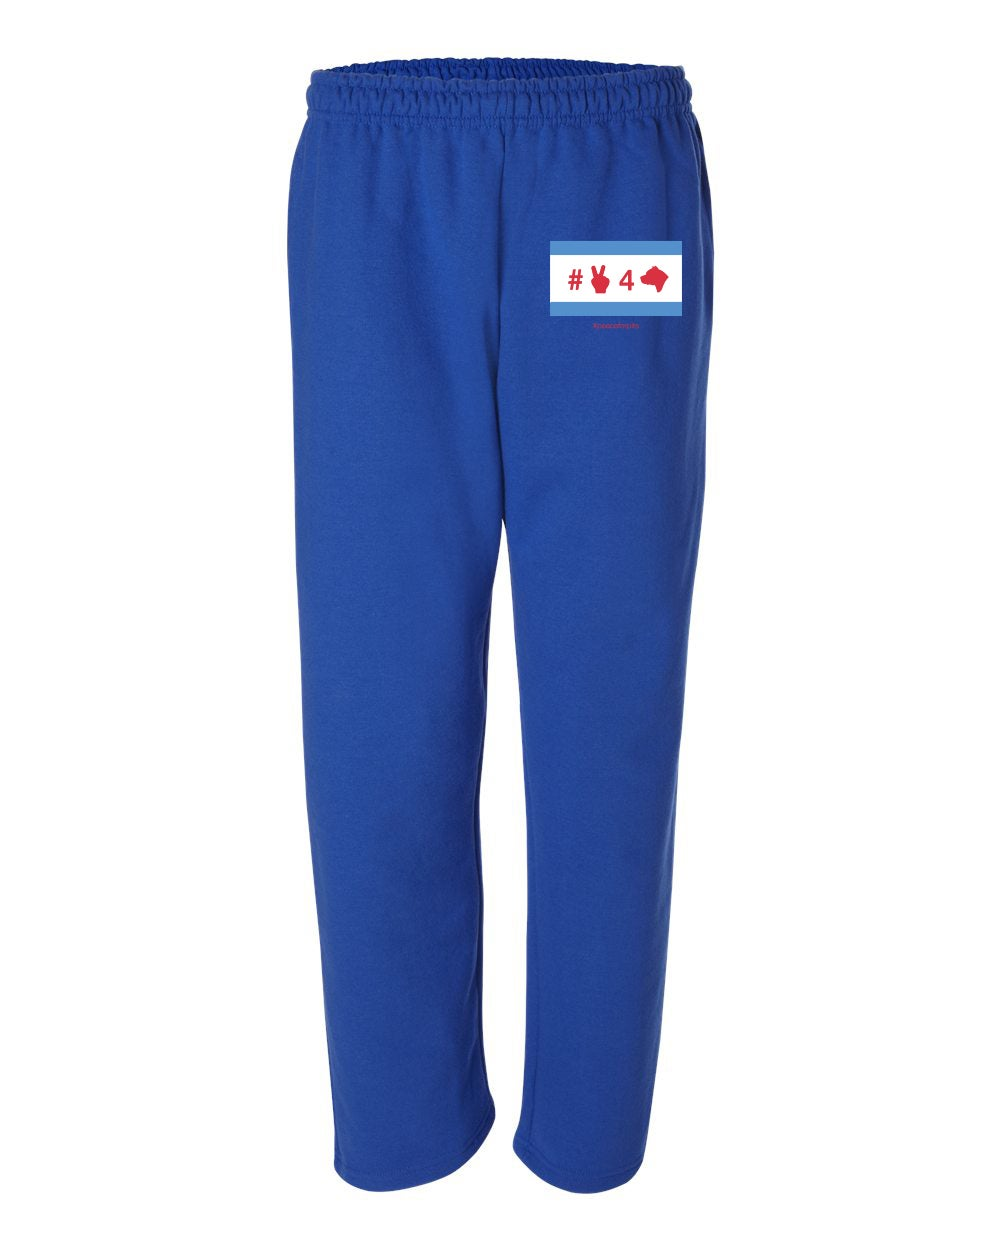 Image of Royal Blue Sweatpants with Pockets